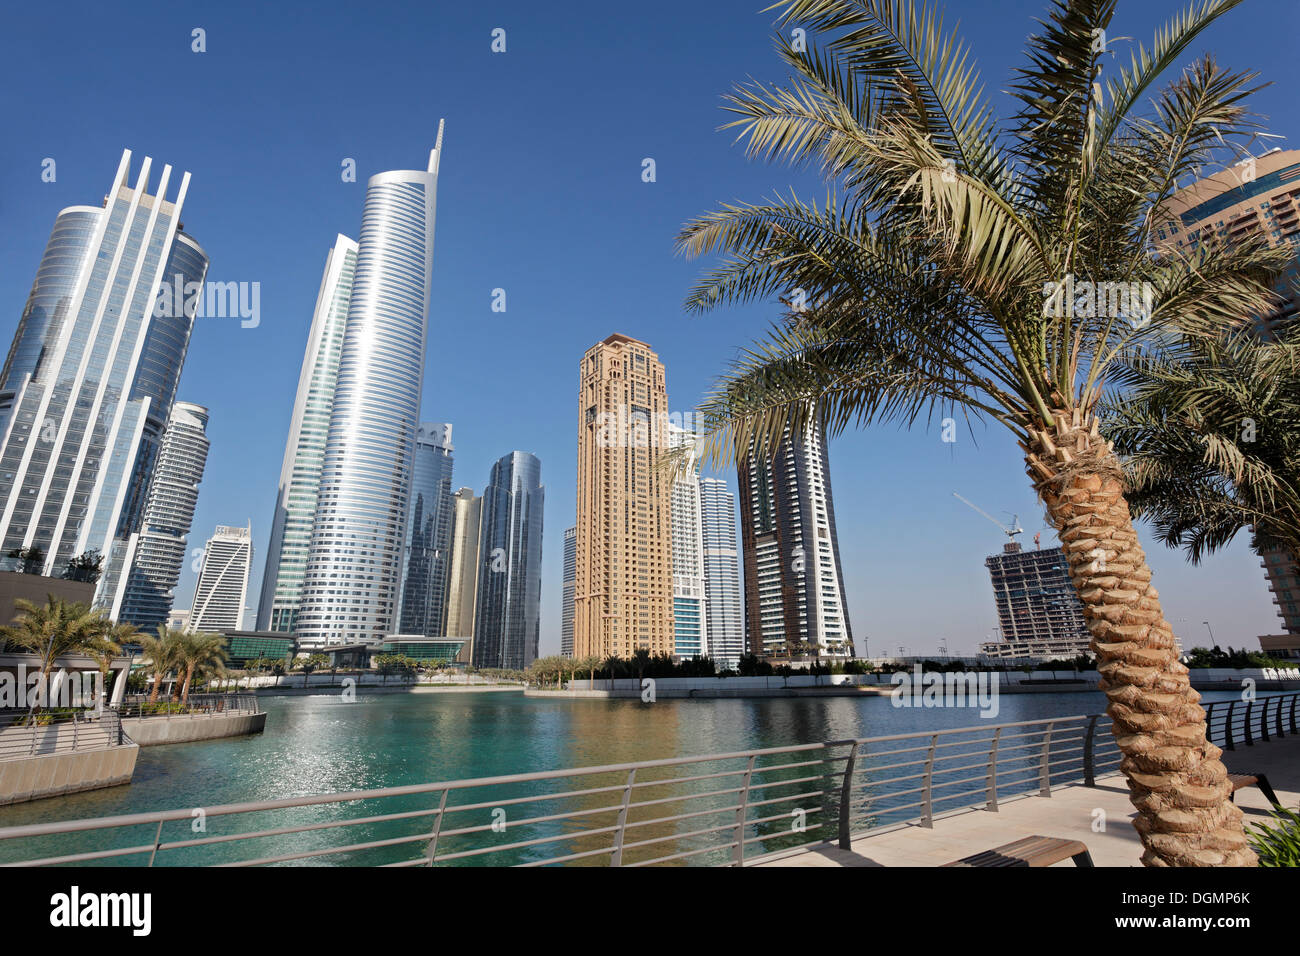 Skyscrapers on an artificial lake, large scale construction project, Jumeirah Lake Towers, Dubai, United Arab Emirates - Stock Image